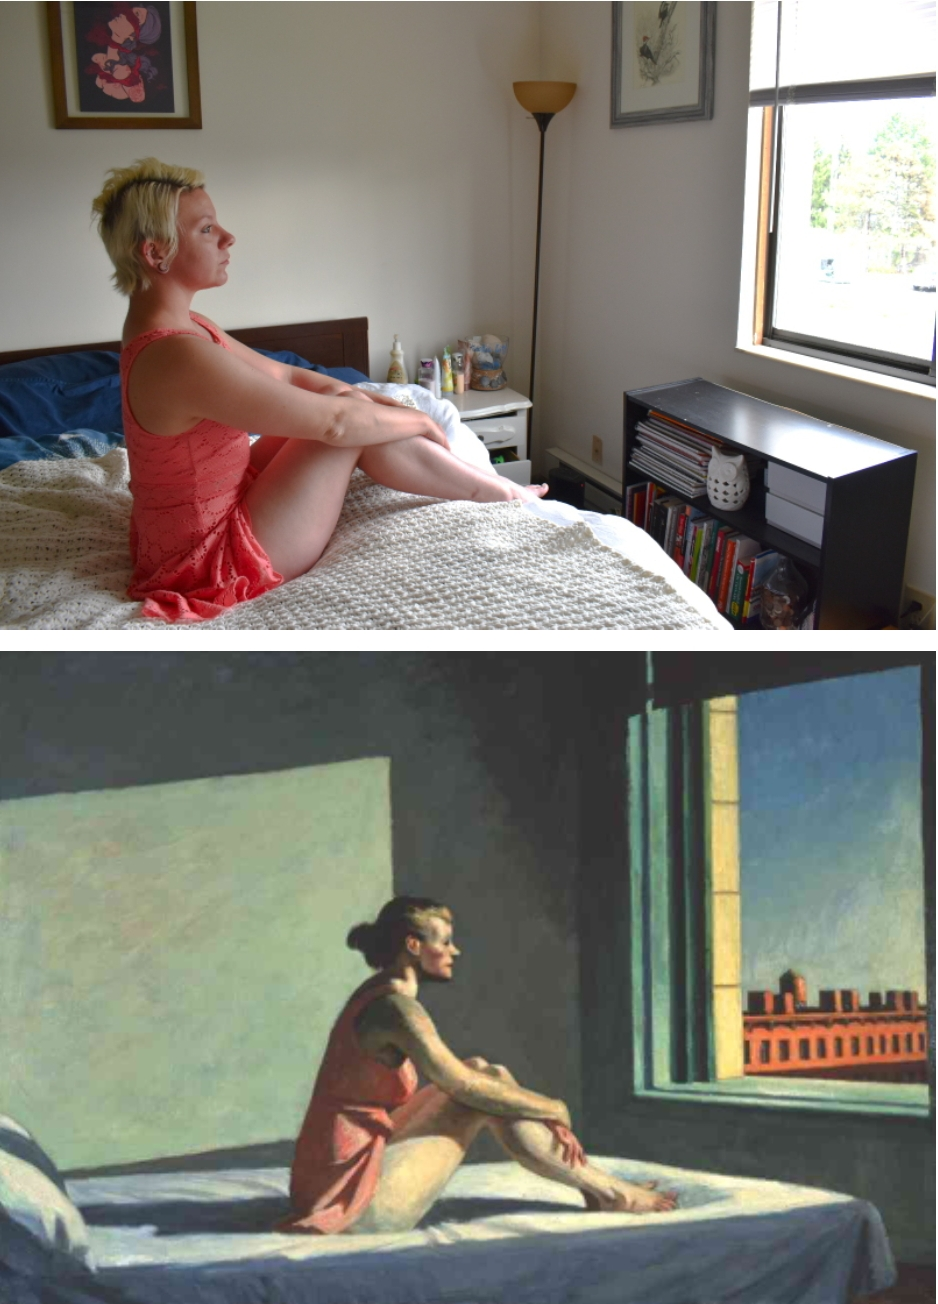 Inspired by Edward Hopper's Morning Sun